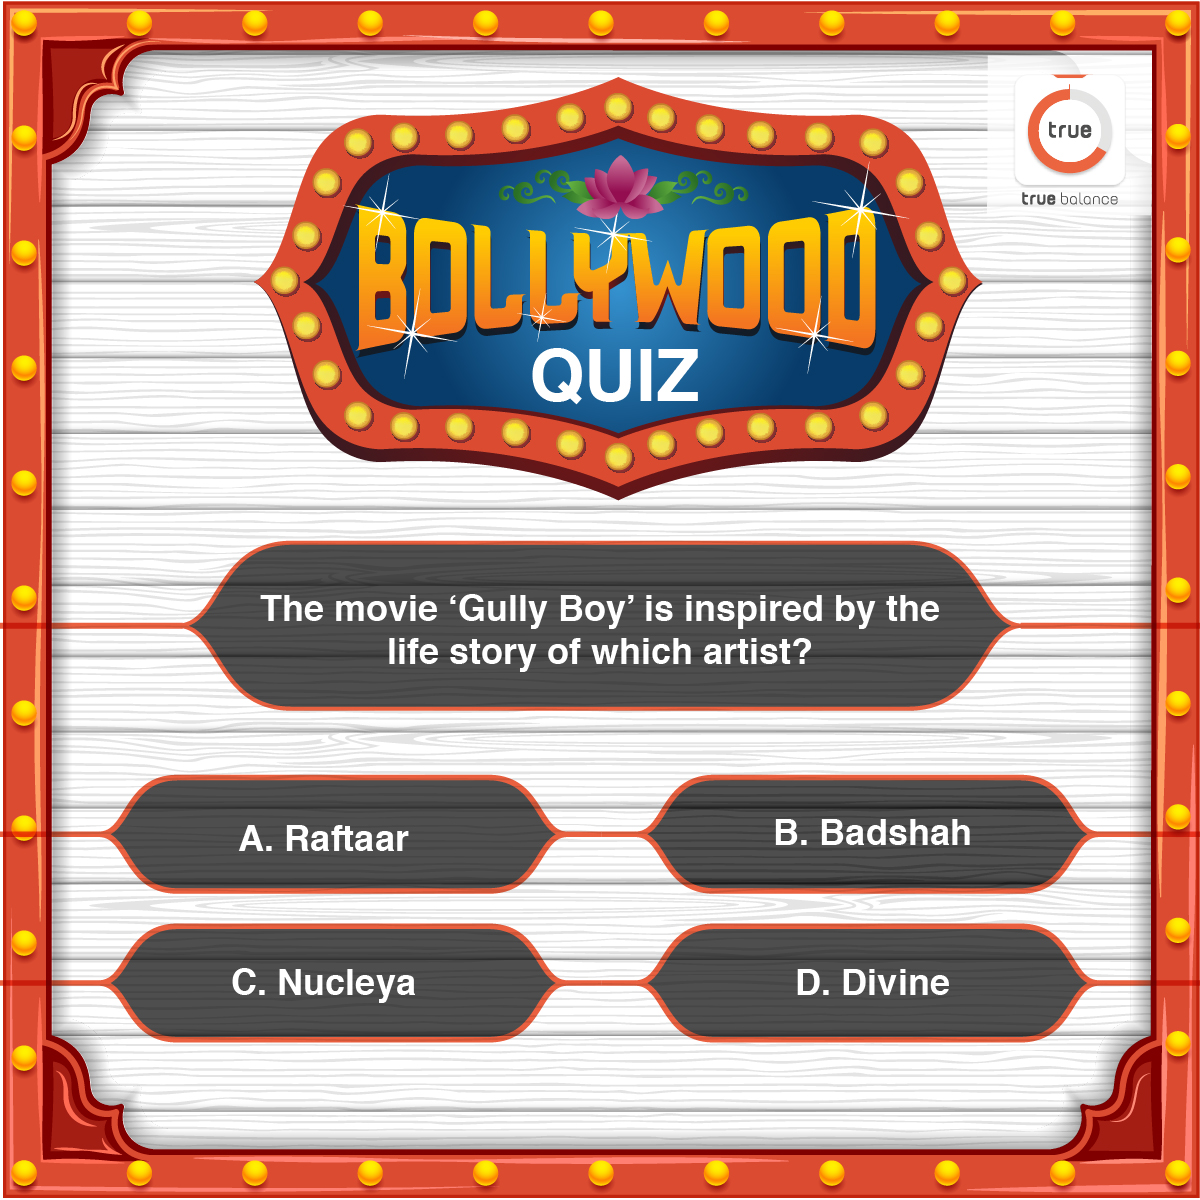 Are you a Movie fan?   Answer this in the comments section #bollywood #love #india #instagram #tollywood #tiktok #mumbai #like #follow #instagood #actor #fashion #bollywoodactress #actress #kollywood  #music #indian #bollywoodsongs #likeforlikes #bollywooddance #bhfyppic.twitter.com/MdcgPZOThW